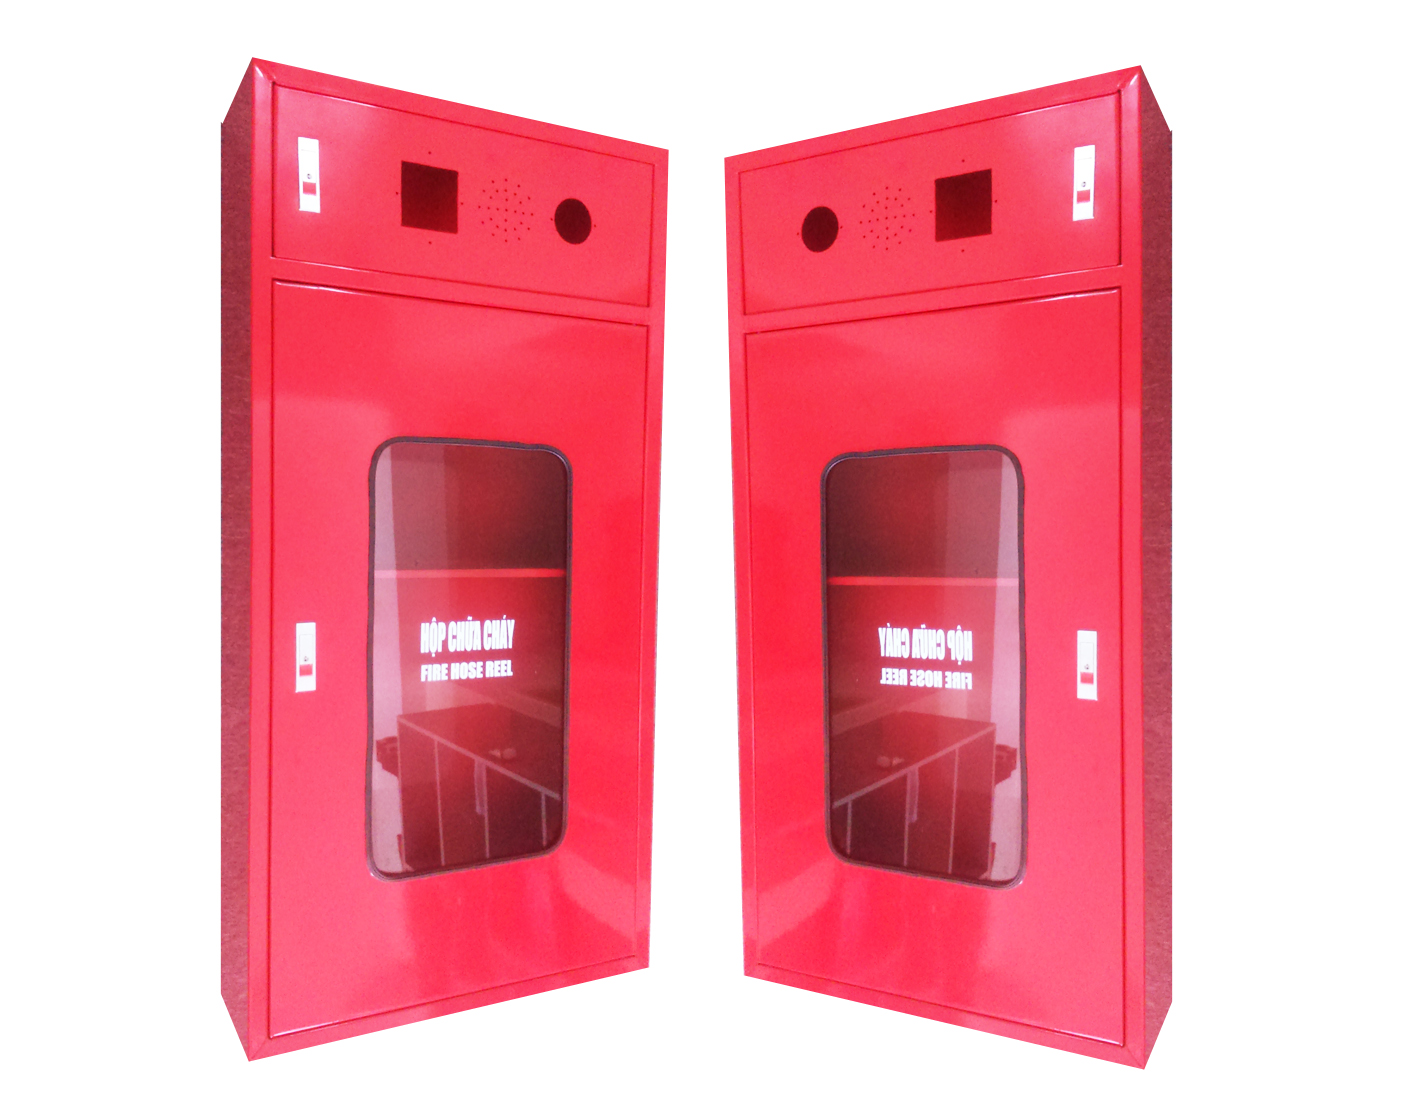 MANUFACTURE OF FIRE HOSE CABINET, FIRE FIGHTING EQUIPMENT, FIRE FIGHTING CABINET